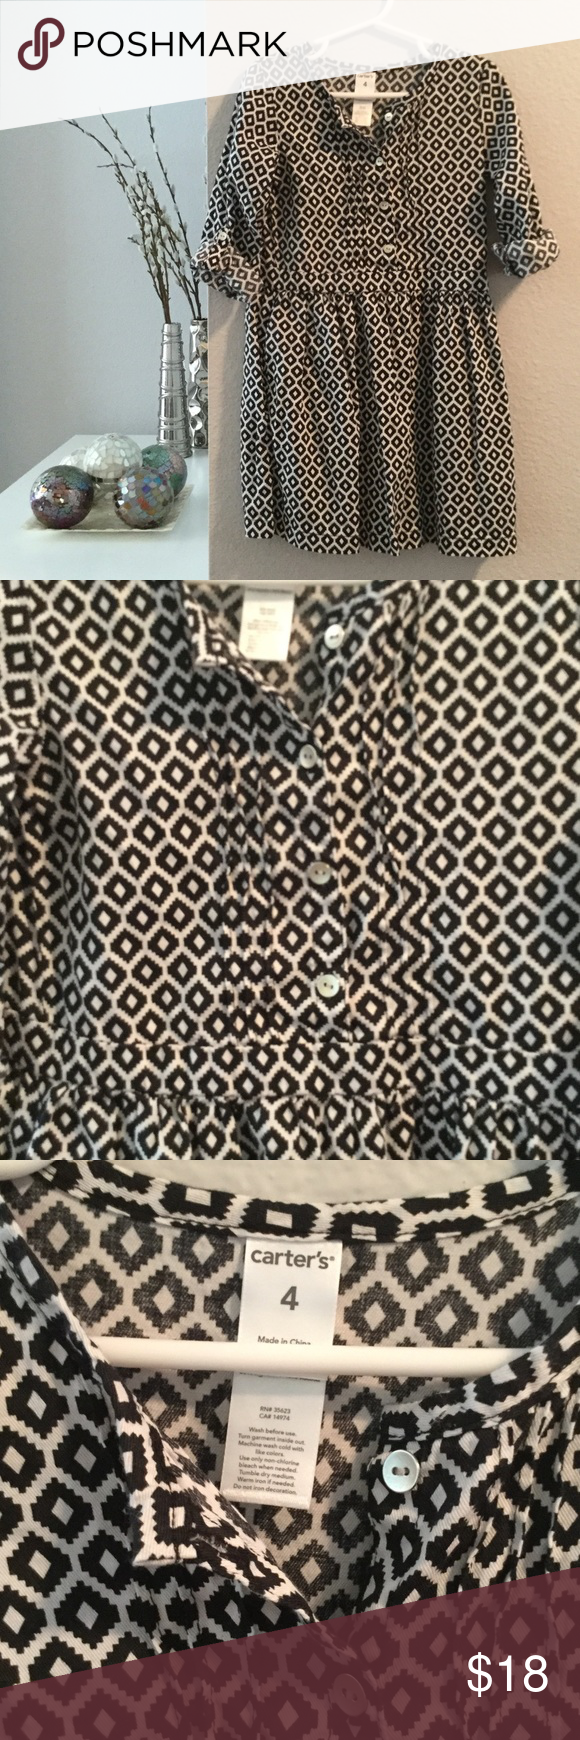 Carter's black and white patterned shirt dress Carter's long-sleeve shirt dress with allover black and white geometric pattern. Long sleeves can be rolled up and buttoned to create shorter sleeves. Lightweight material. Like new, worn once. Carter's Dresses